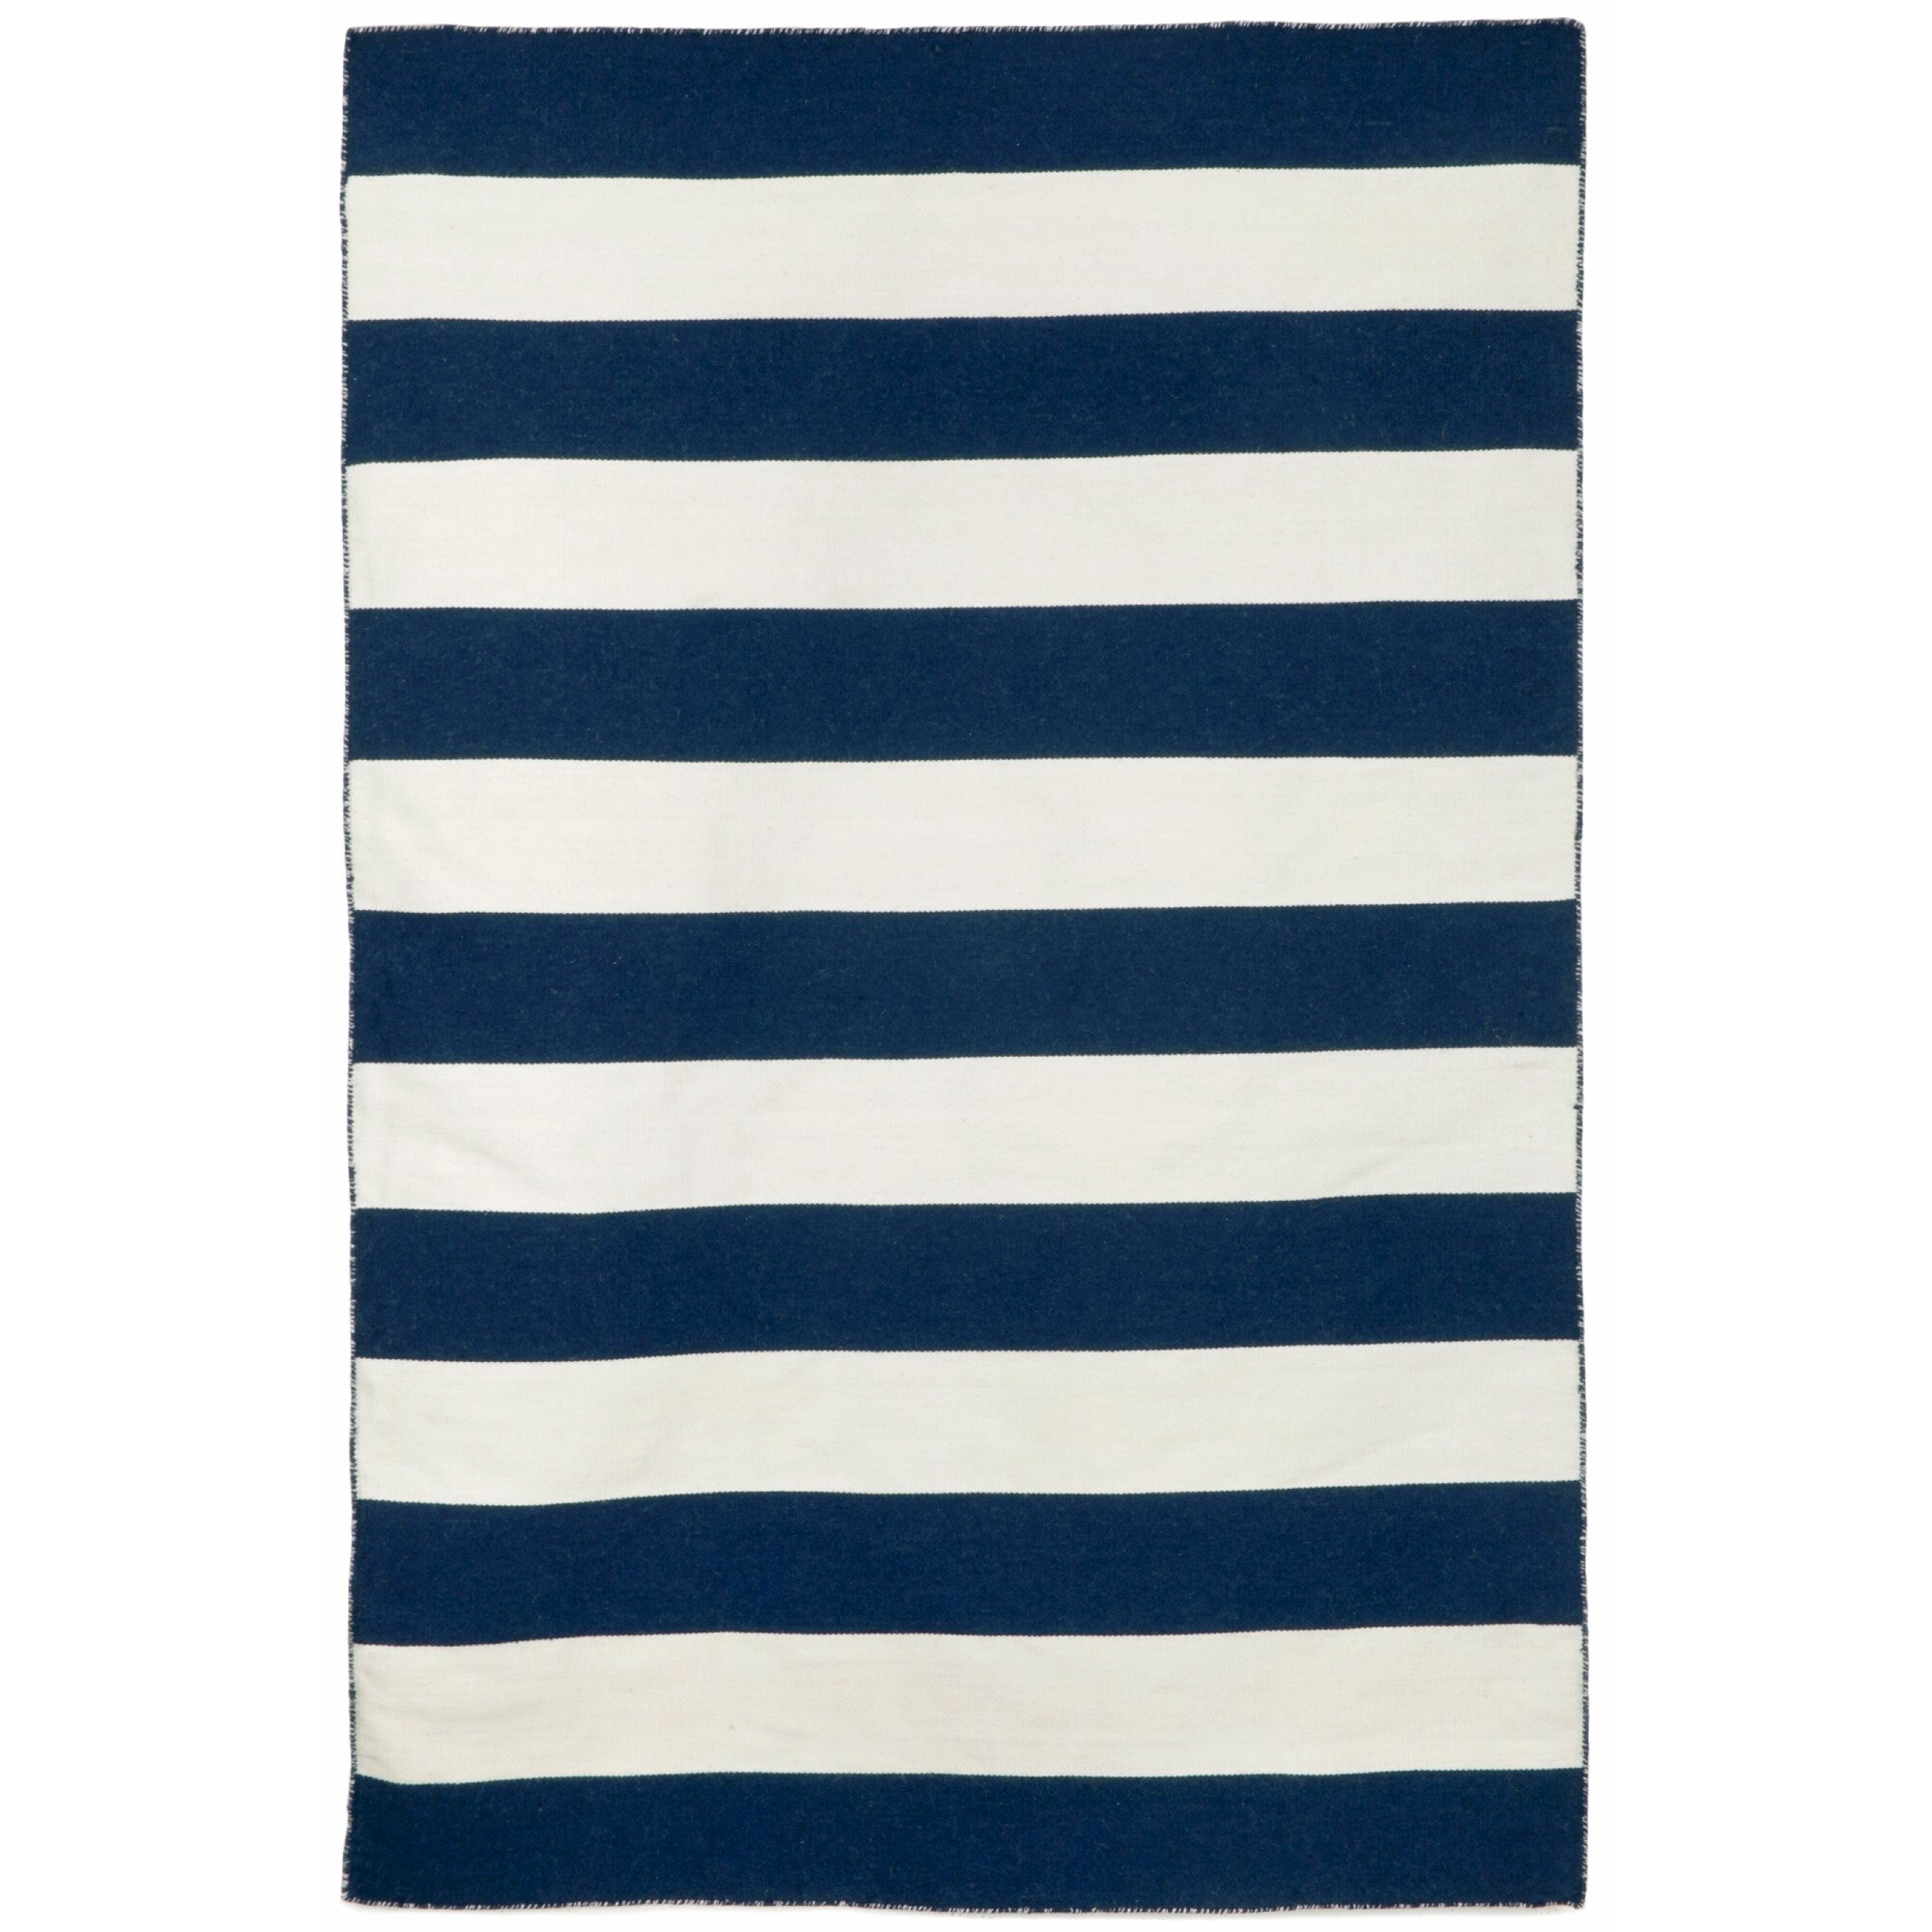 Ranier Stripe Handwoven Flatweave Navy White Indoor Outdoor Area Rug